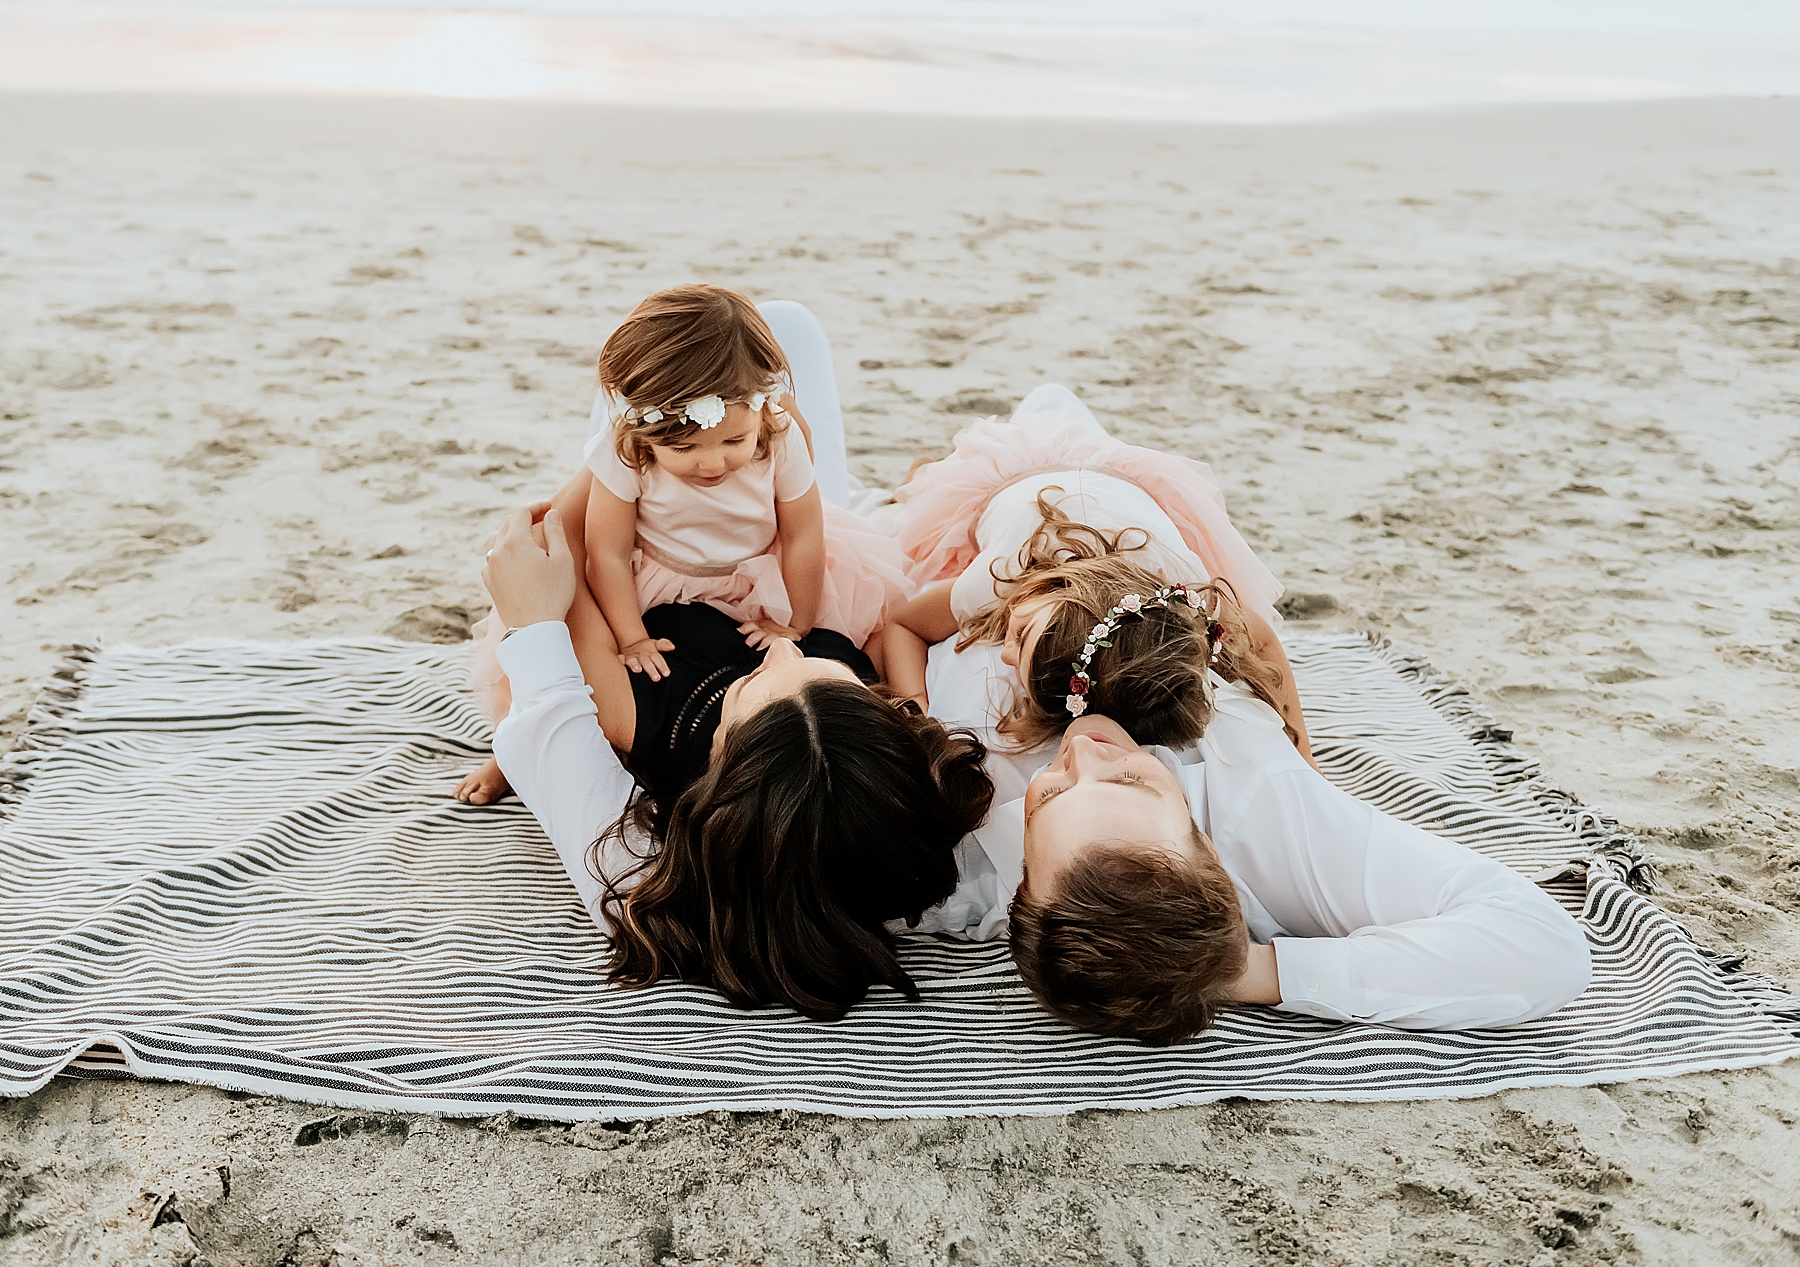 family of 4 beach pictures cuddling on blanket